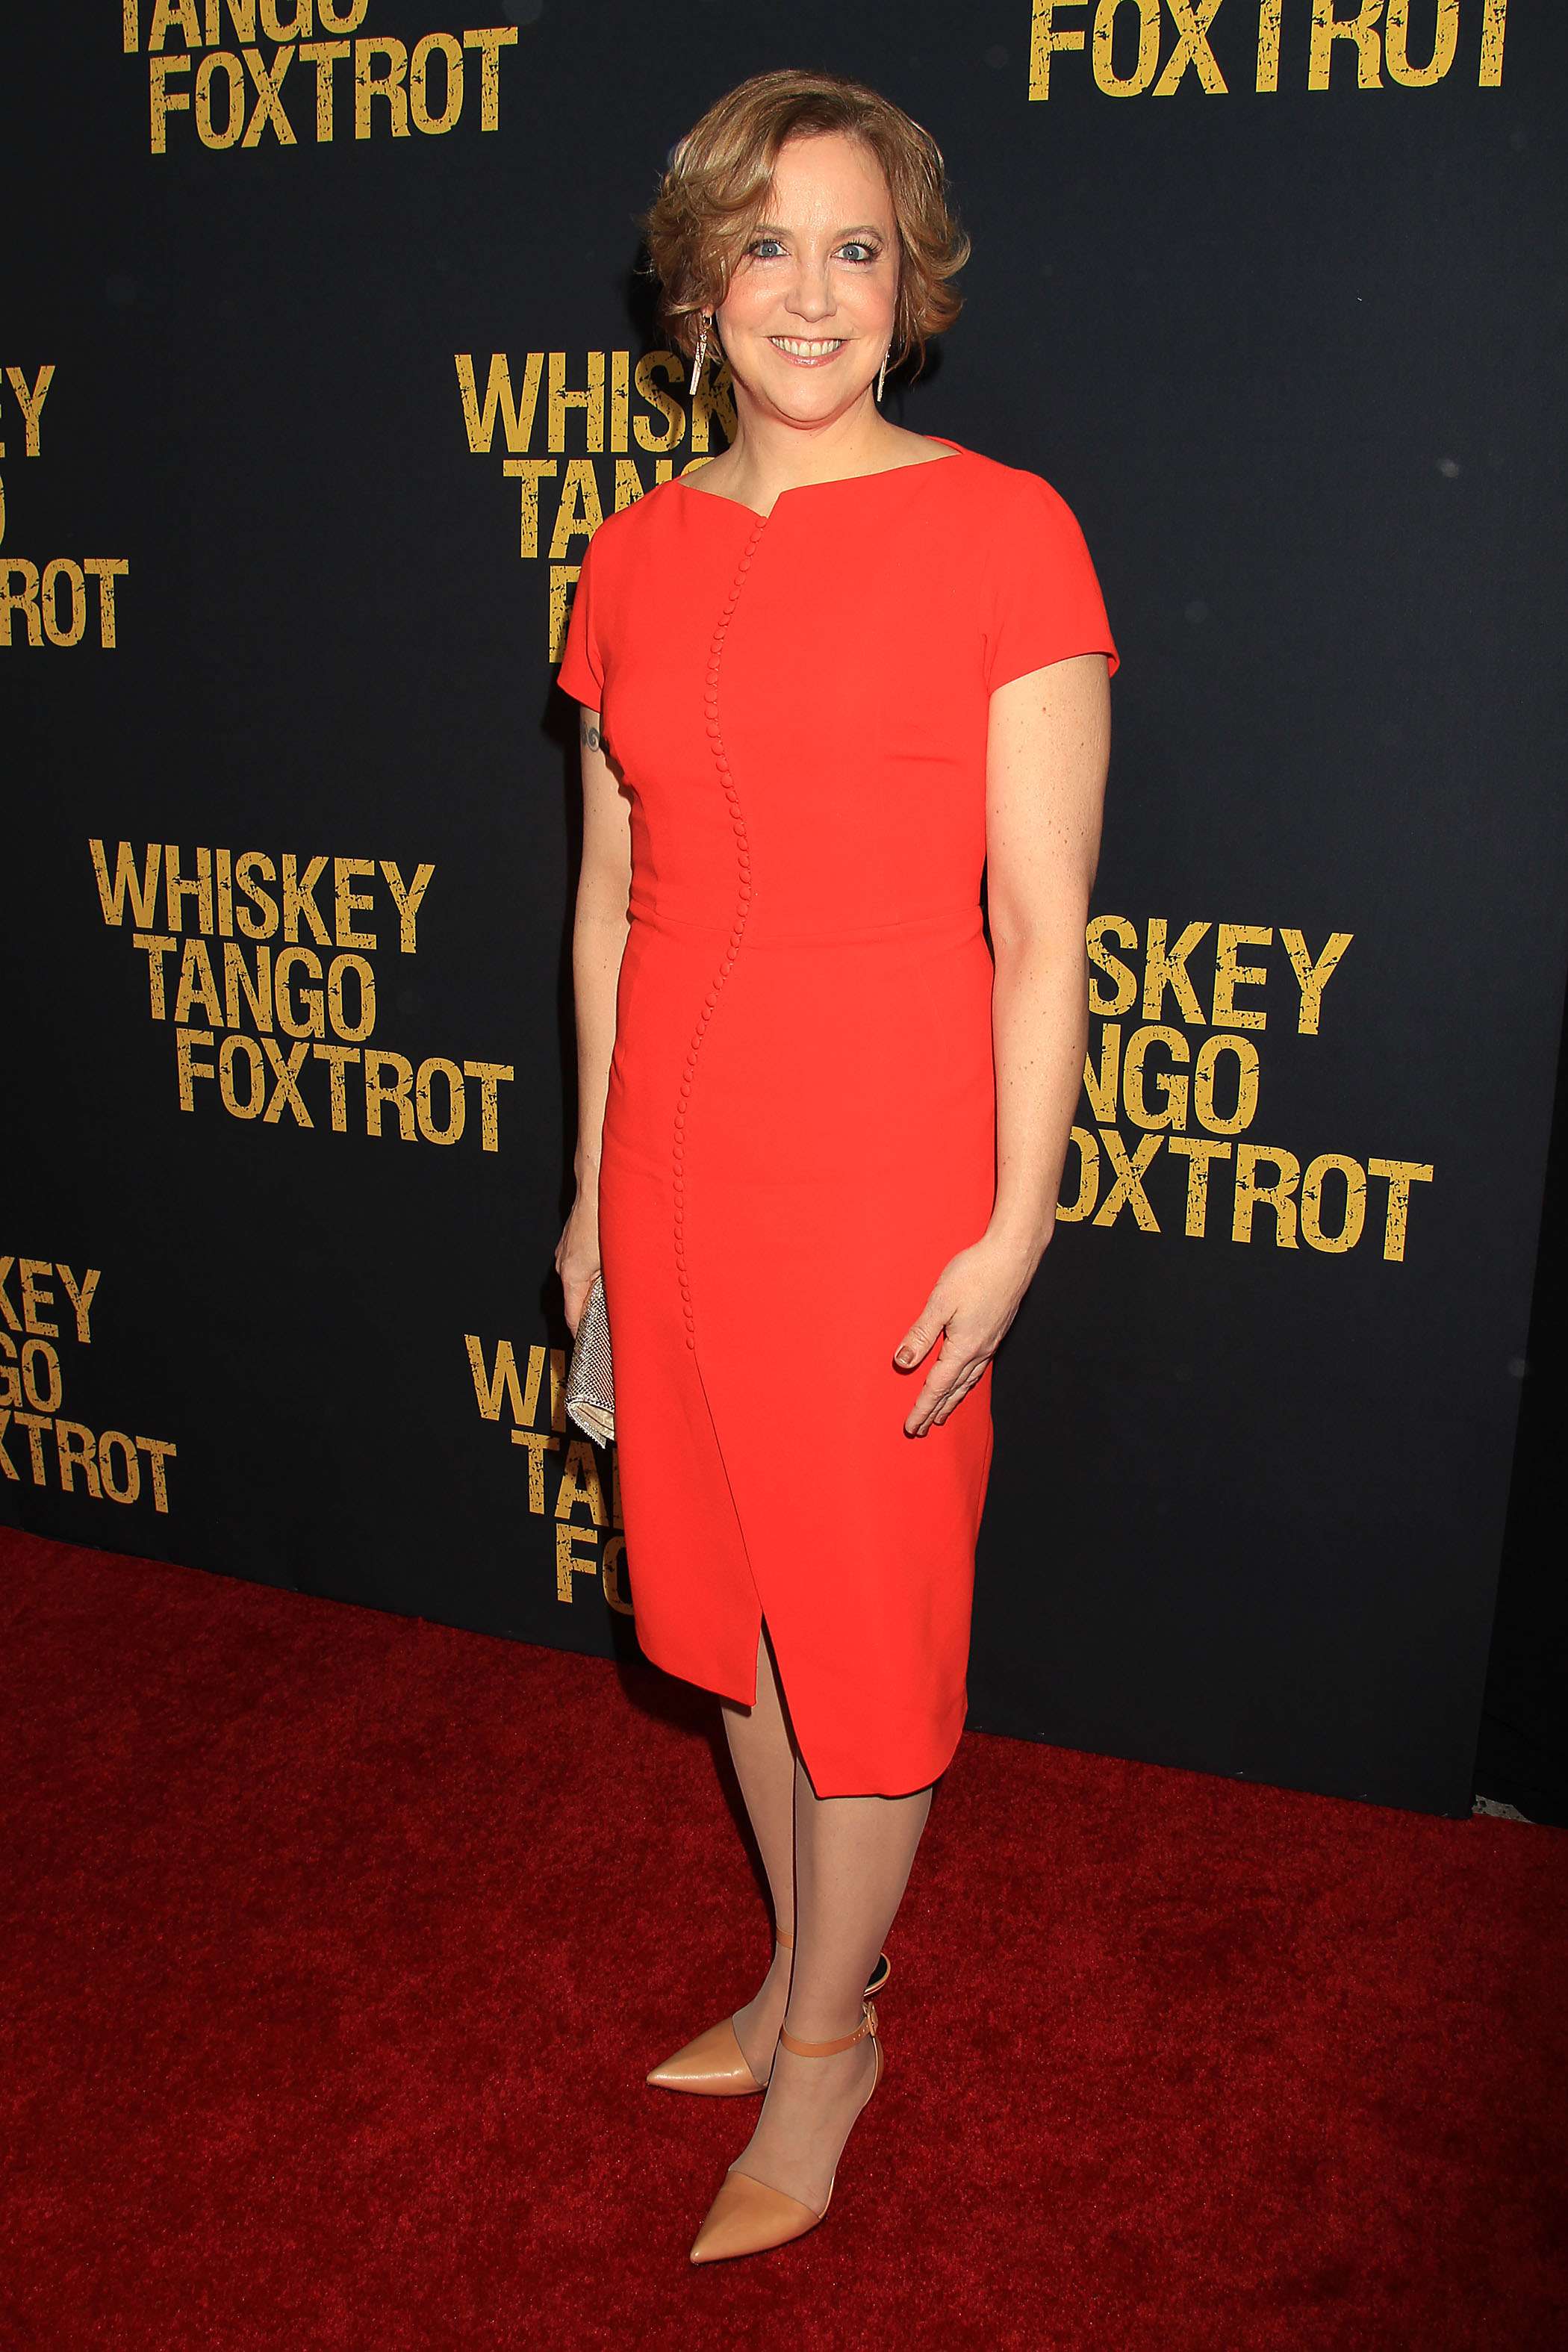 "New York, NY - 3/1/16 - Kim Barker attends the Paramount Pictures World Premiere of ""WHISKEY TANGO FOXTROT"". The film stars Tina Fey, Margot Robbie, Martin Freeman, Billy Bob Thornton and Christopher Abbott. It opens in theaters March 4th, 2016. PHOTO by: Dave Allocca/Starpix"